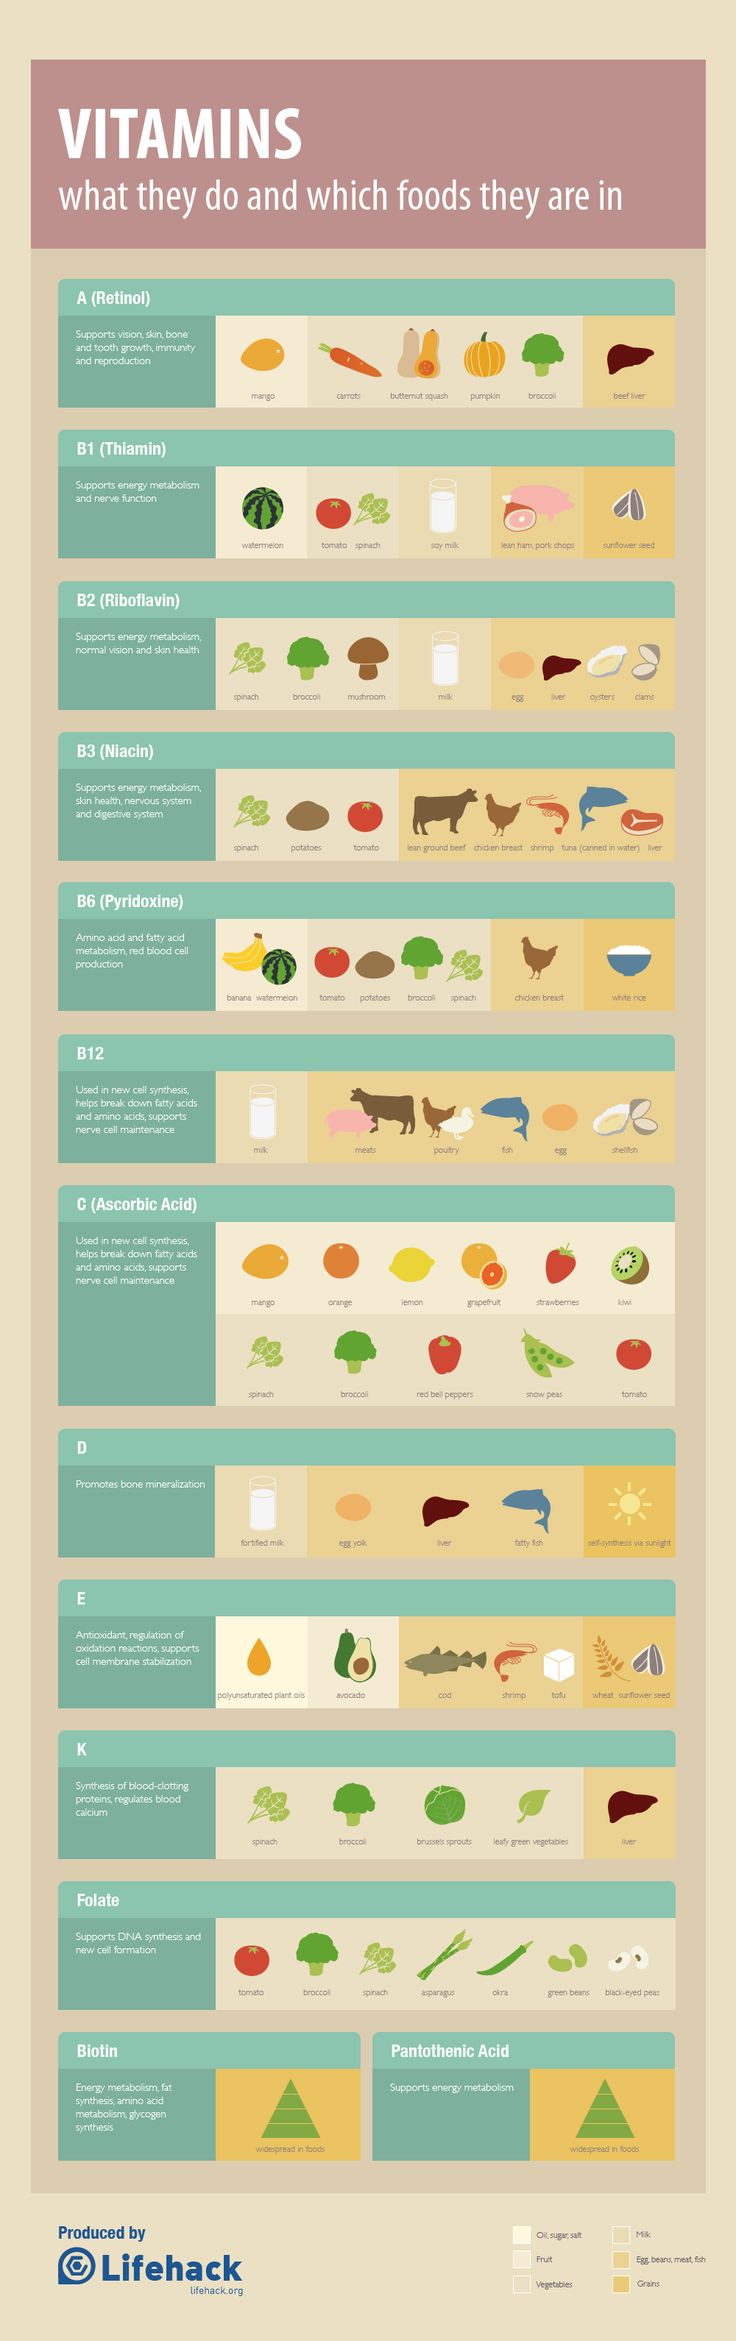 Vitamins: What They Do and Which Foods They Are In #infographic